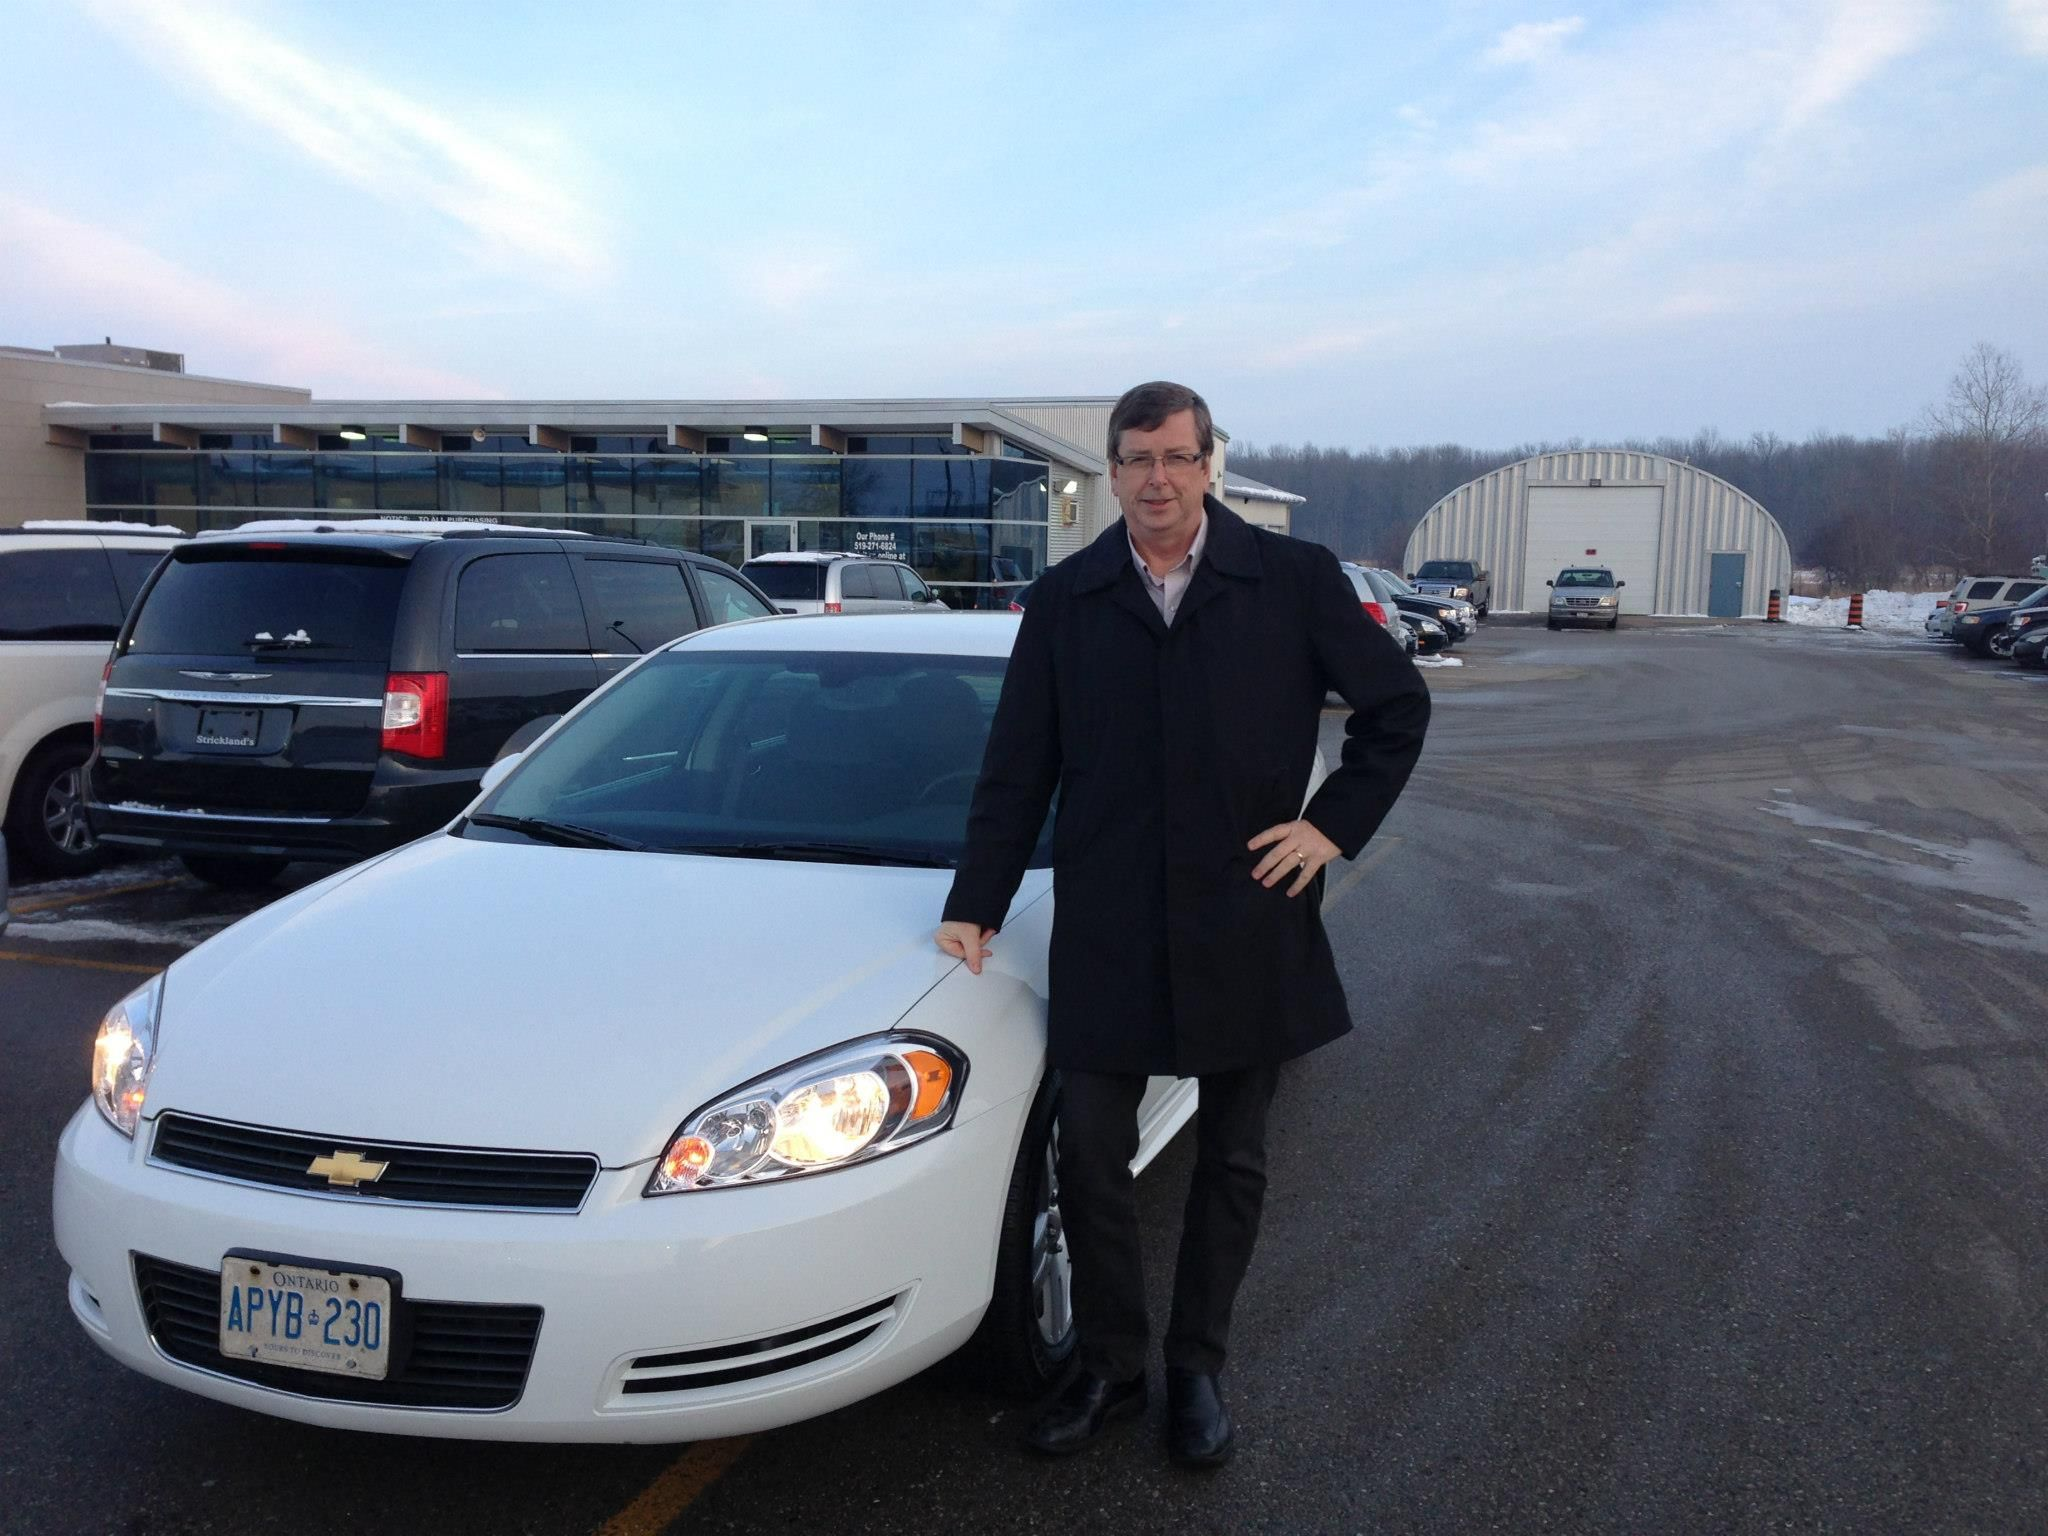 Doug strikes a pose beside his 2011 Chevrolet Impala from